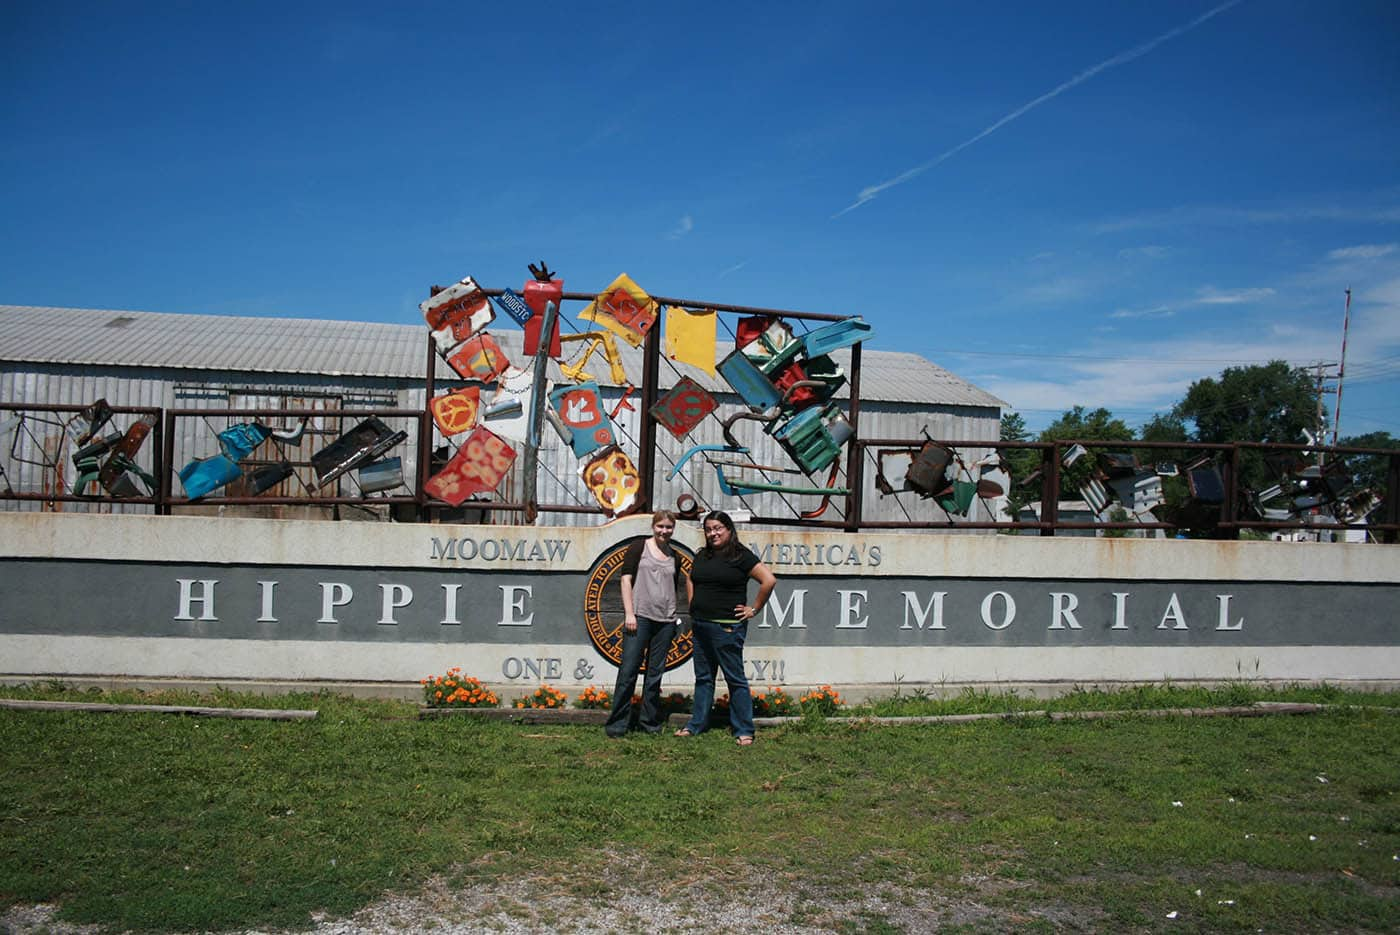 ILLINOIS ROAD TRIP AND ROADSIDE ATTRACTIONS: ONE AND ONLY HIPPIE MEMORIAL IN ARCOLA